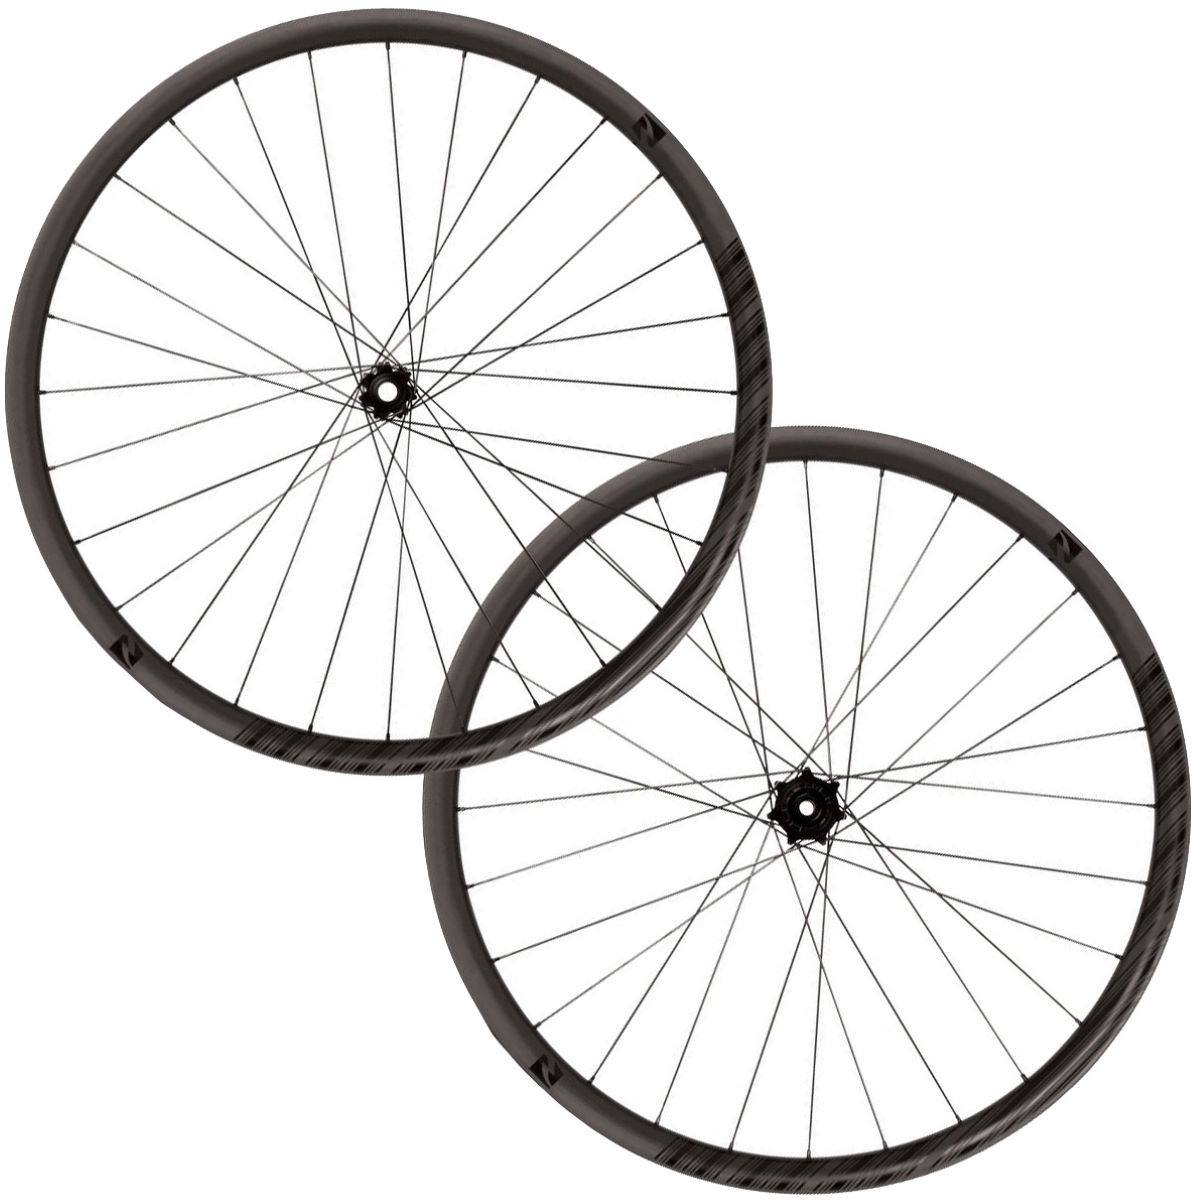 Reynolds Reynolds Black Label Wide Trail 349 Carbon Wheelset   Wheel Sets